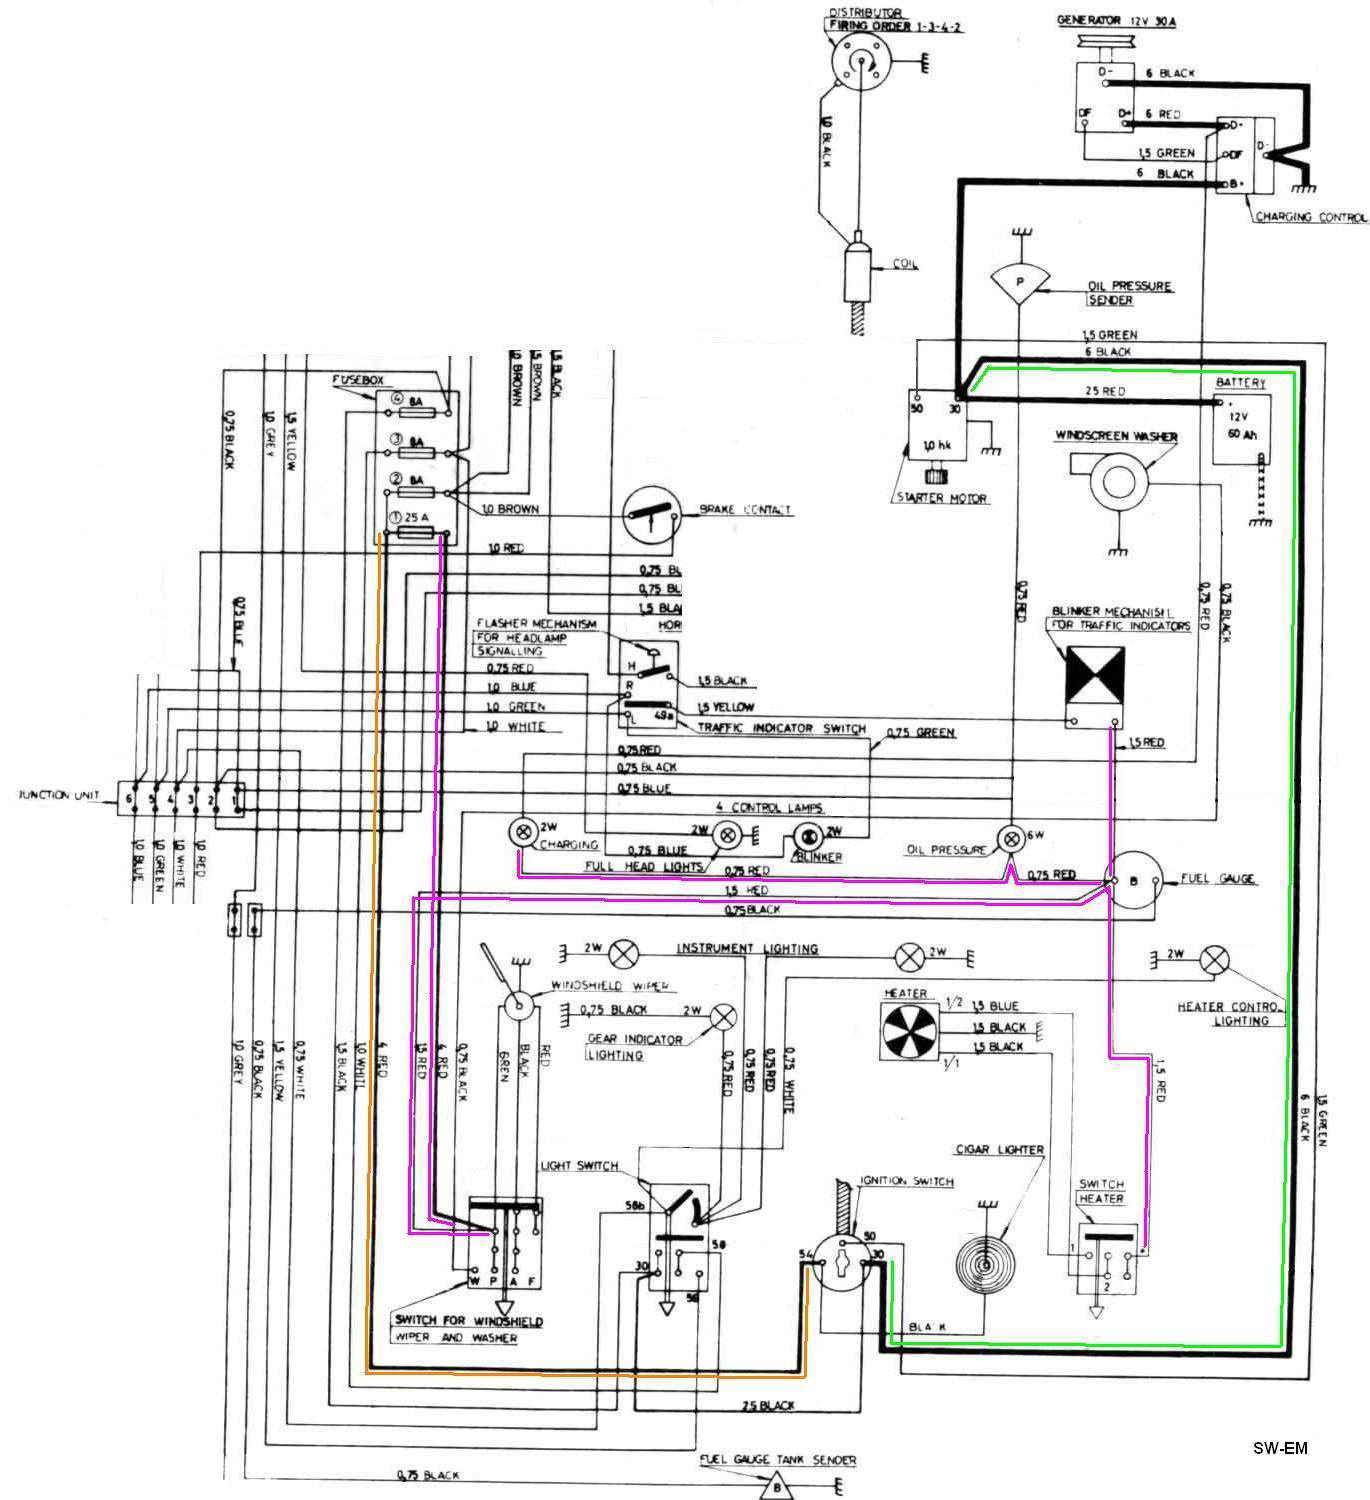 S40 Radio Wiring Electrical Diagram Schematics Universal Stereo 1998 Volvo House Symbols U2022 Car Speaker